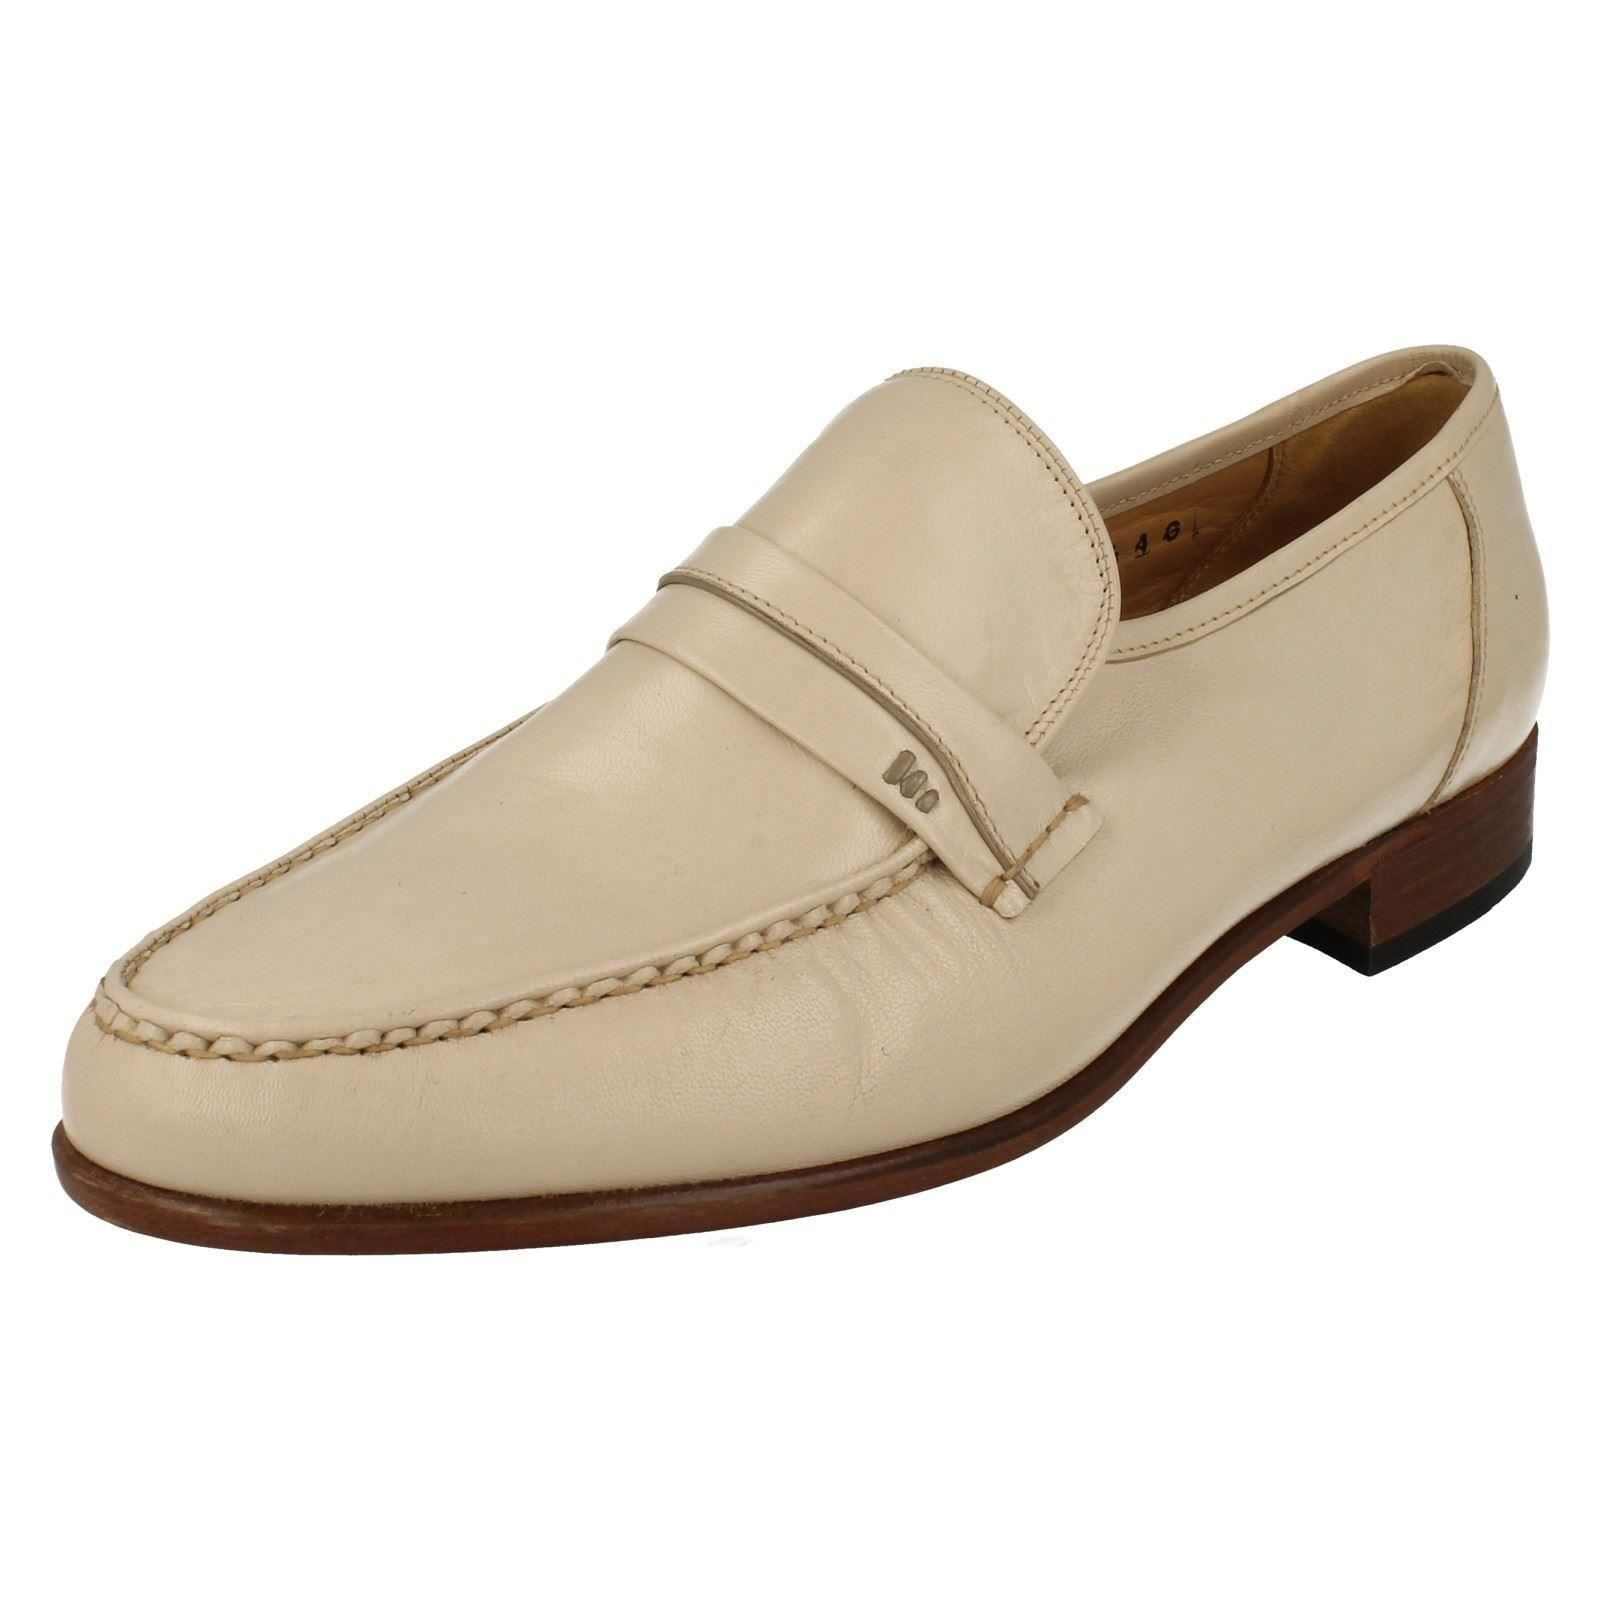 Hommes Ivoire Cuir Feathermaster By Grenson Chaussures Habillées à Enfiler